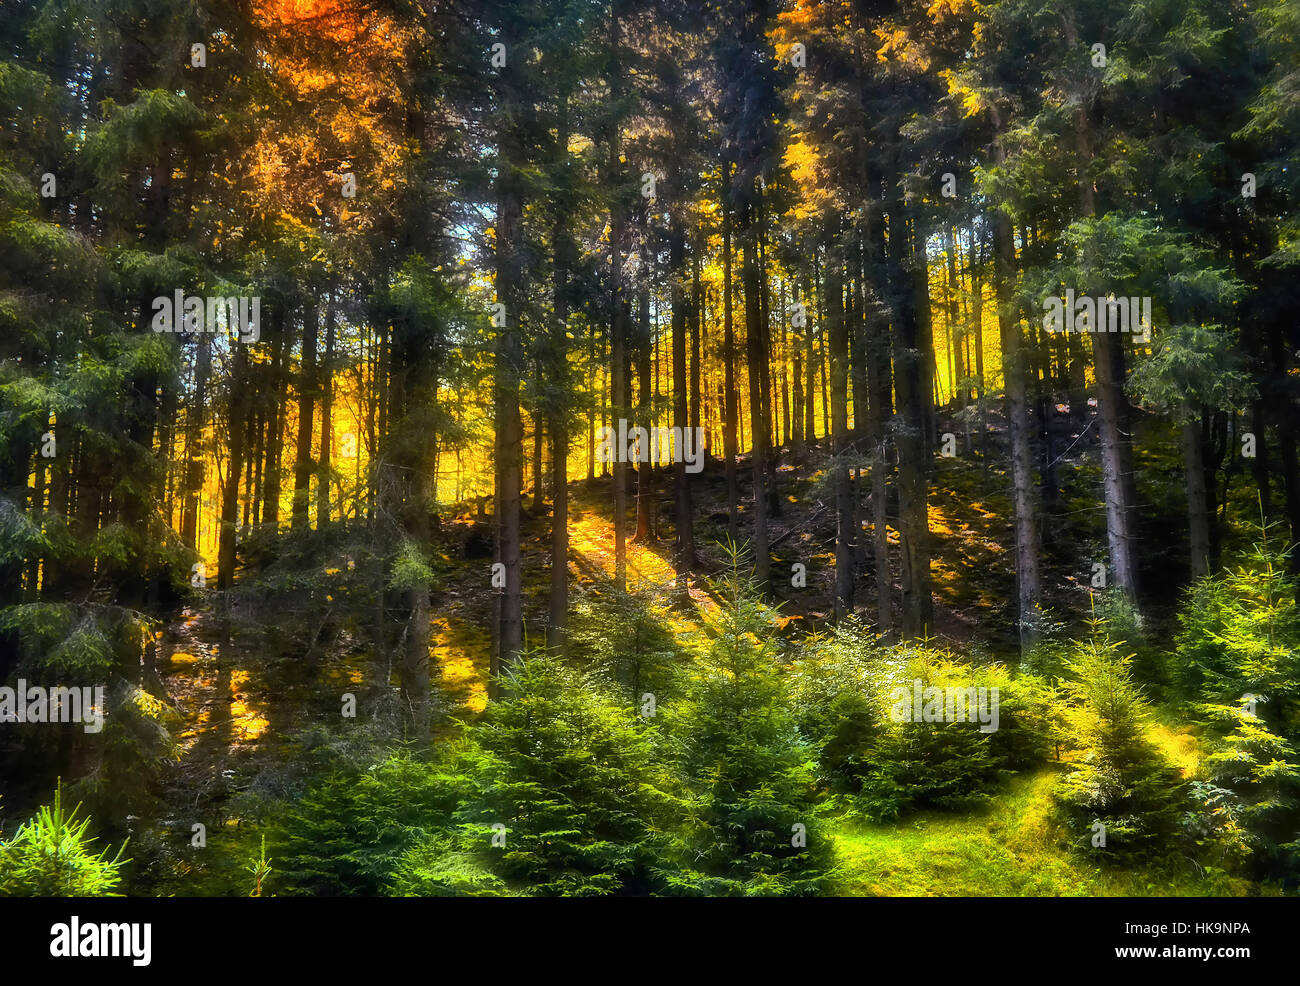 the light can be so special deep in the forest. shot during a trip in romanian virgin forest of fagaras mountains - Stock Image